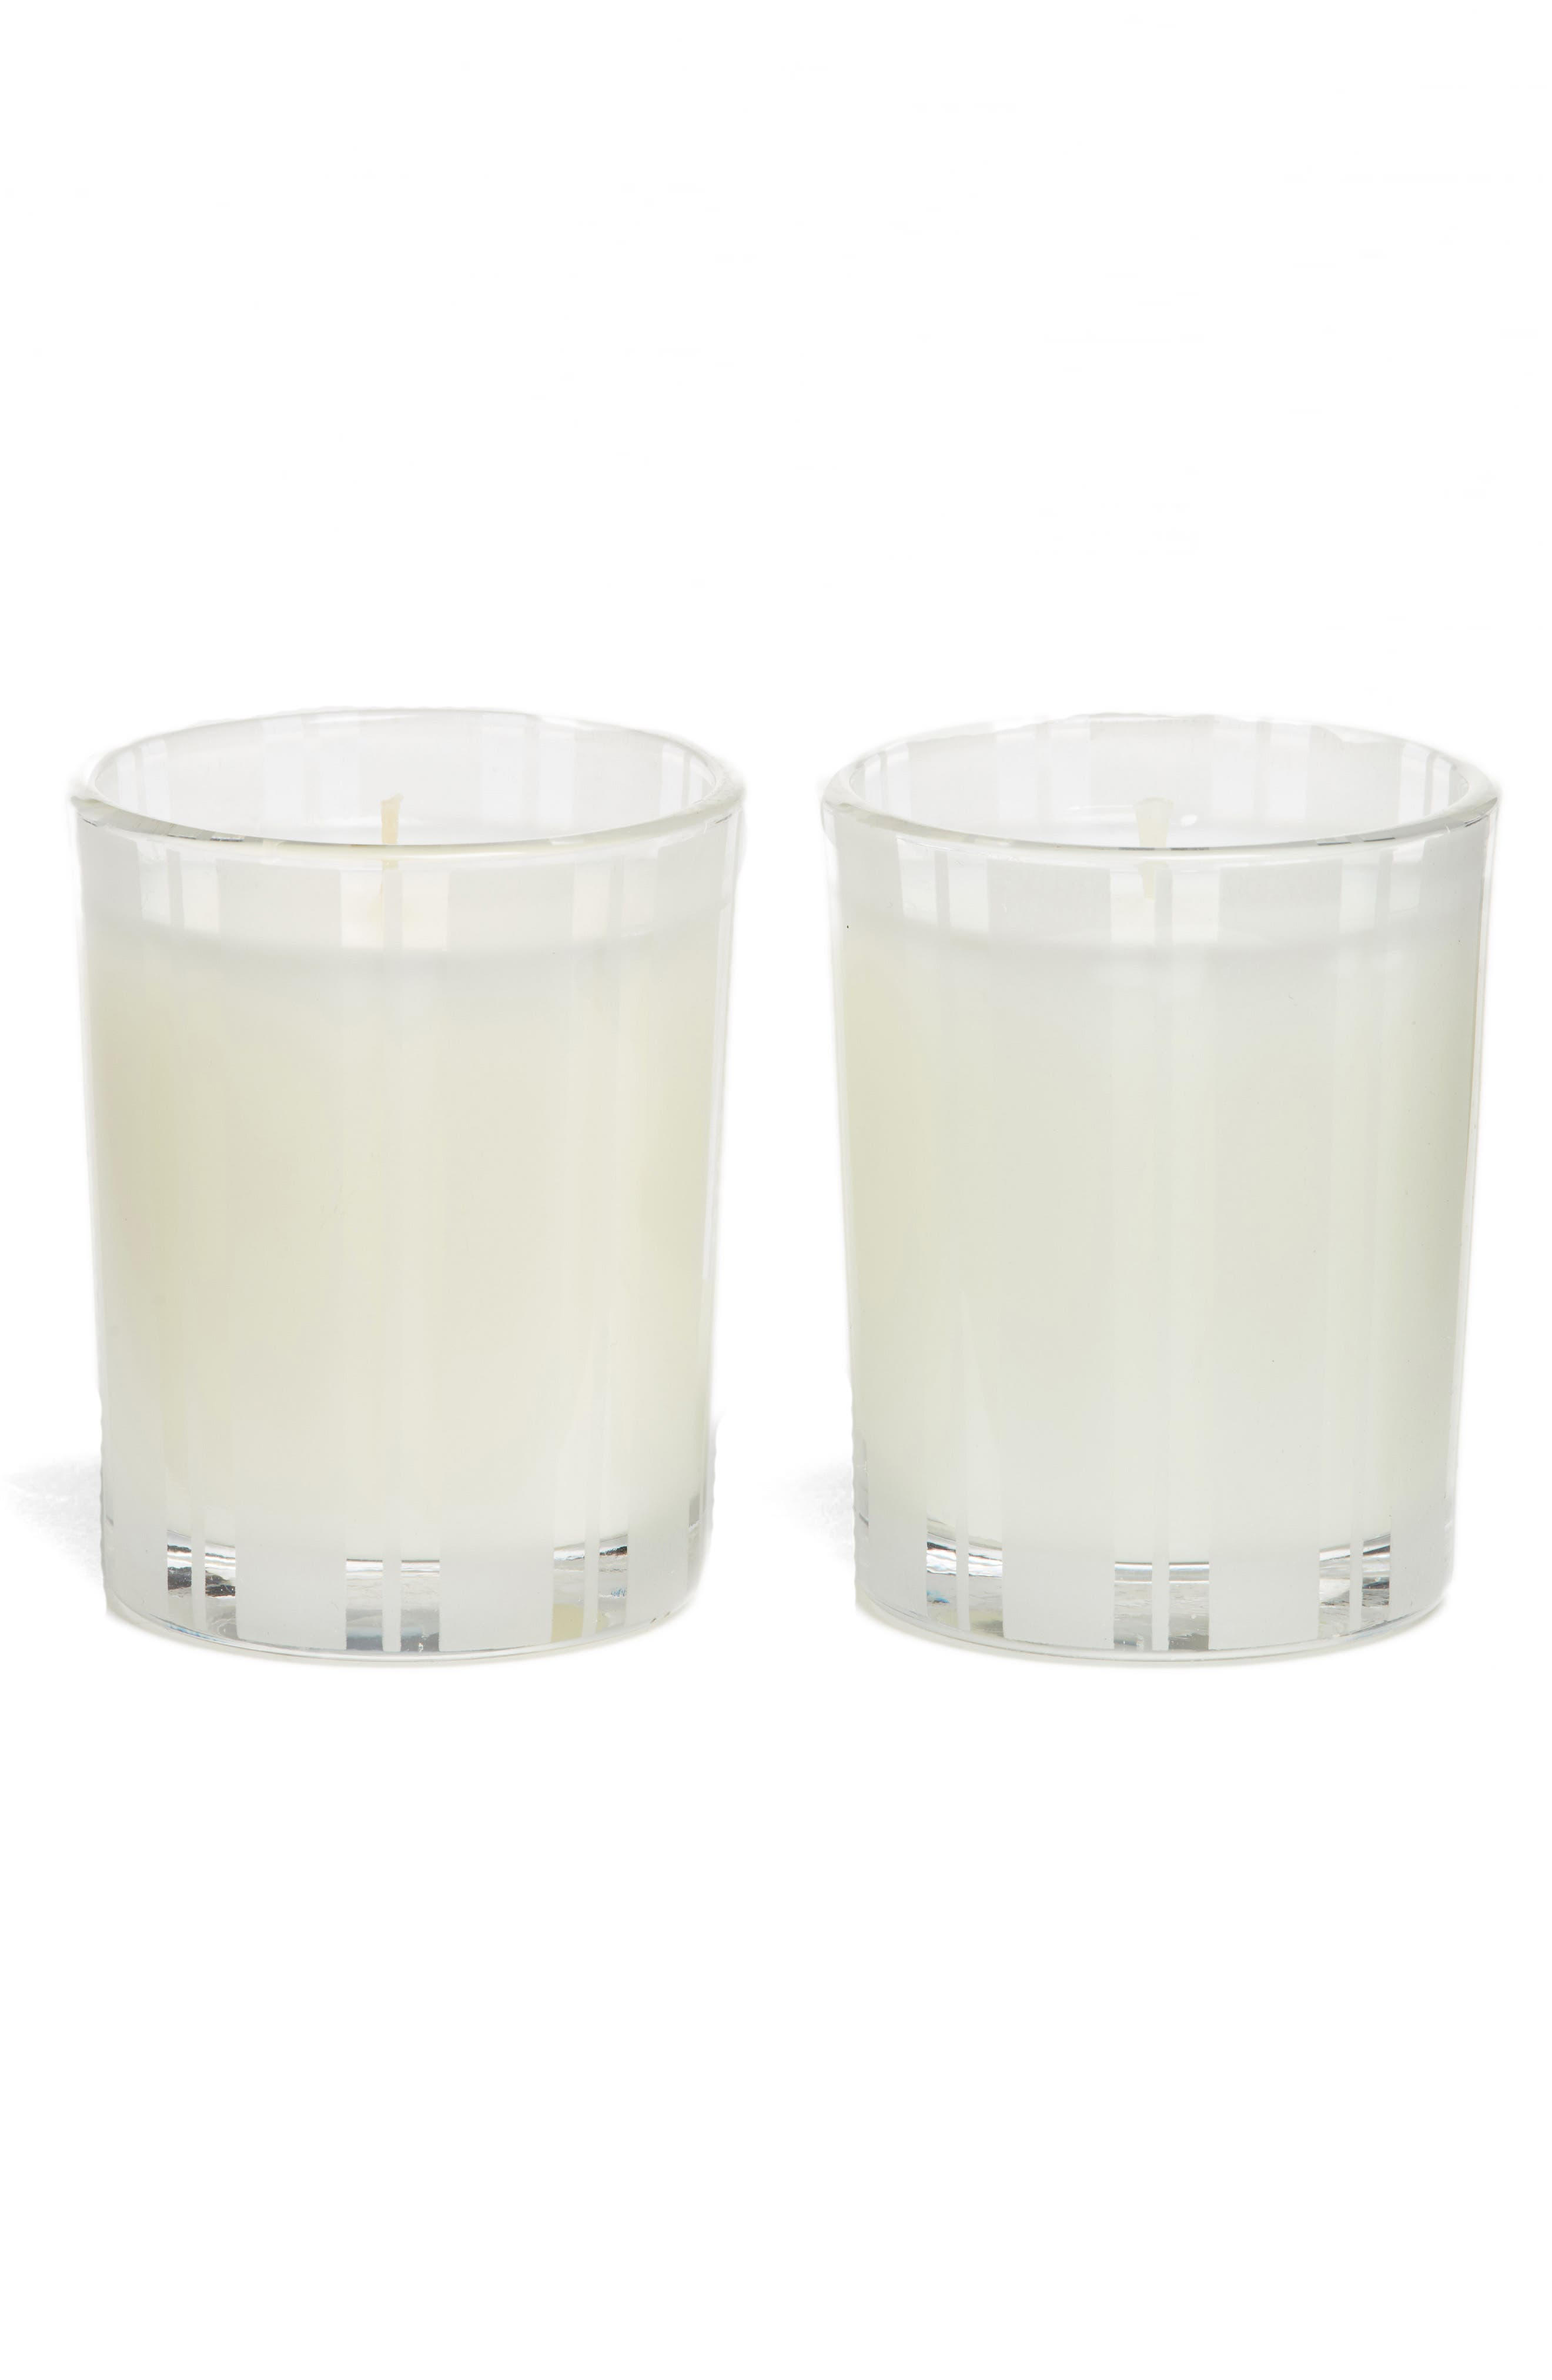 Bamboo & Grapefruit Votive Candle Duo,                         Main,                         color, No Color